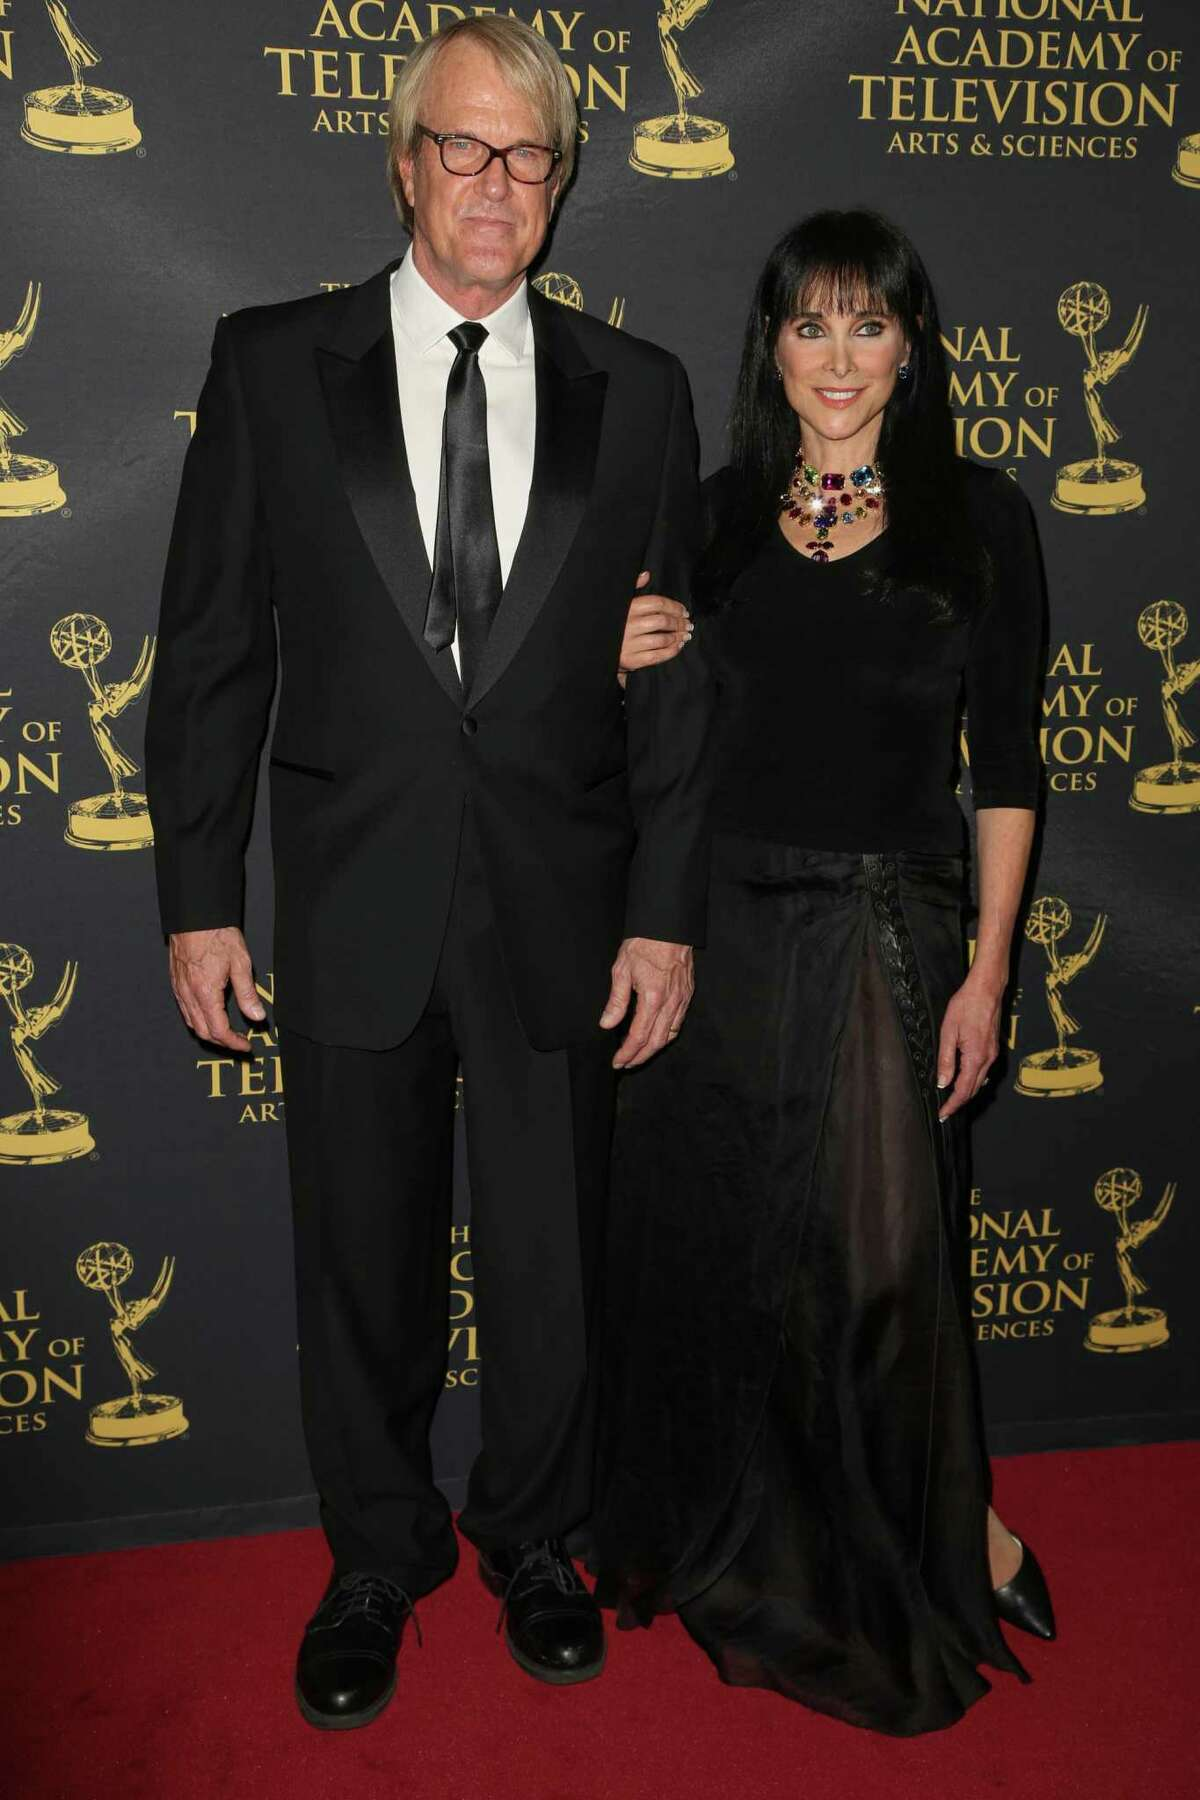 """TESH AT KATE: John Tesh, left, shown with Connie Sellecca in 2015, will present """"Songs and Stories from the Grand Piano"""" on Thursday, May 9, at 7:30 p.m. at The Kate in Old Saybrook. Tickets ($65) are at TheKate.org."""